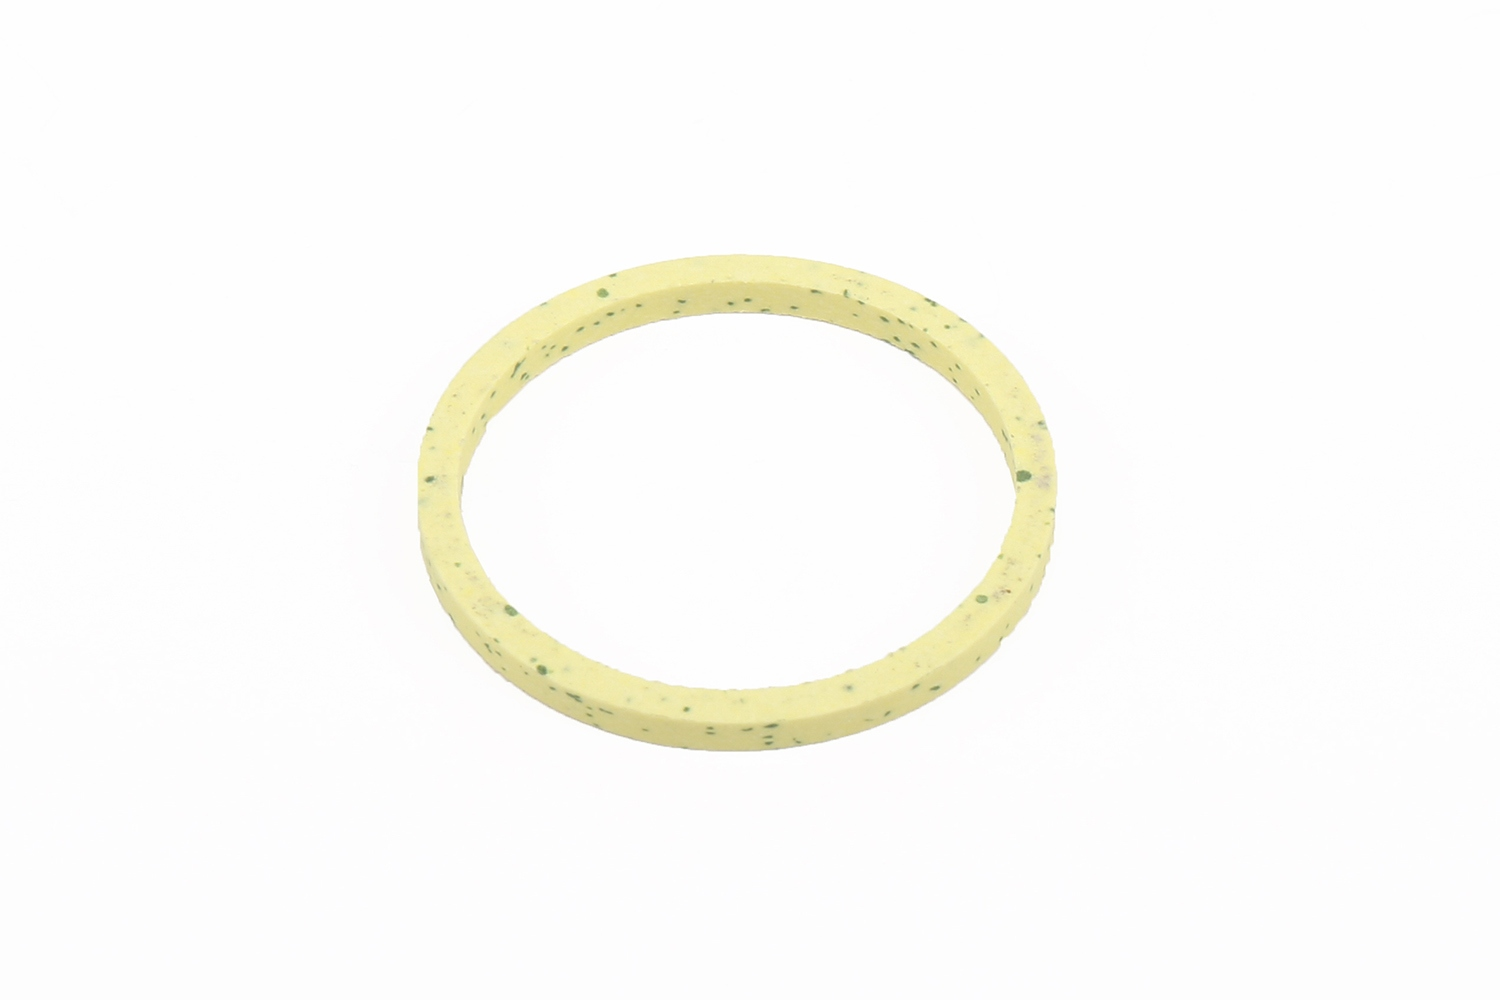 ACDELCO OE SERVICE - Turbine Shaft Fluid Seal Ring - DCB 24224655